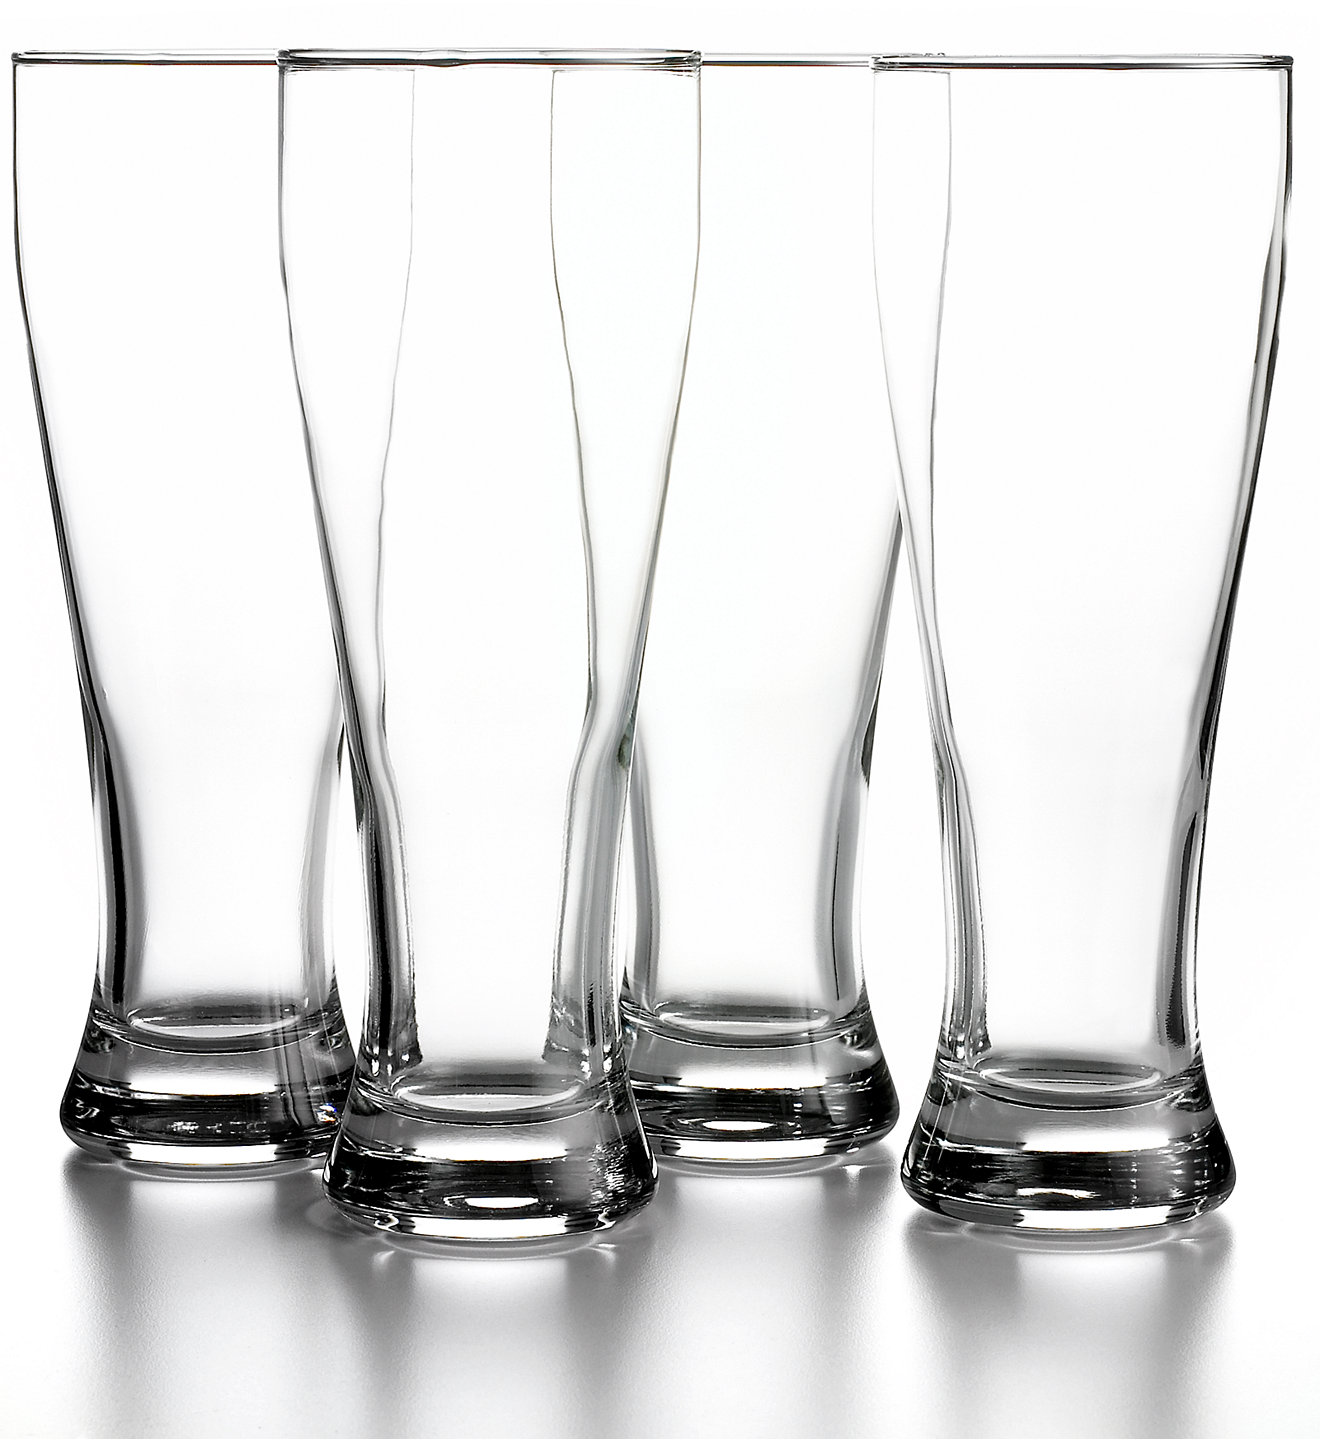 The Cellar Everyday Set of 4 Large Beer Glasses - Shop All Glassware & Stemware - Dining & Entertaining - Macy's Bridal and Wedding Registry